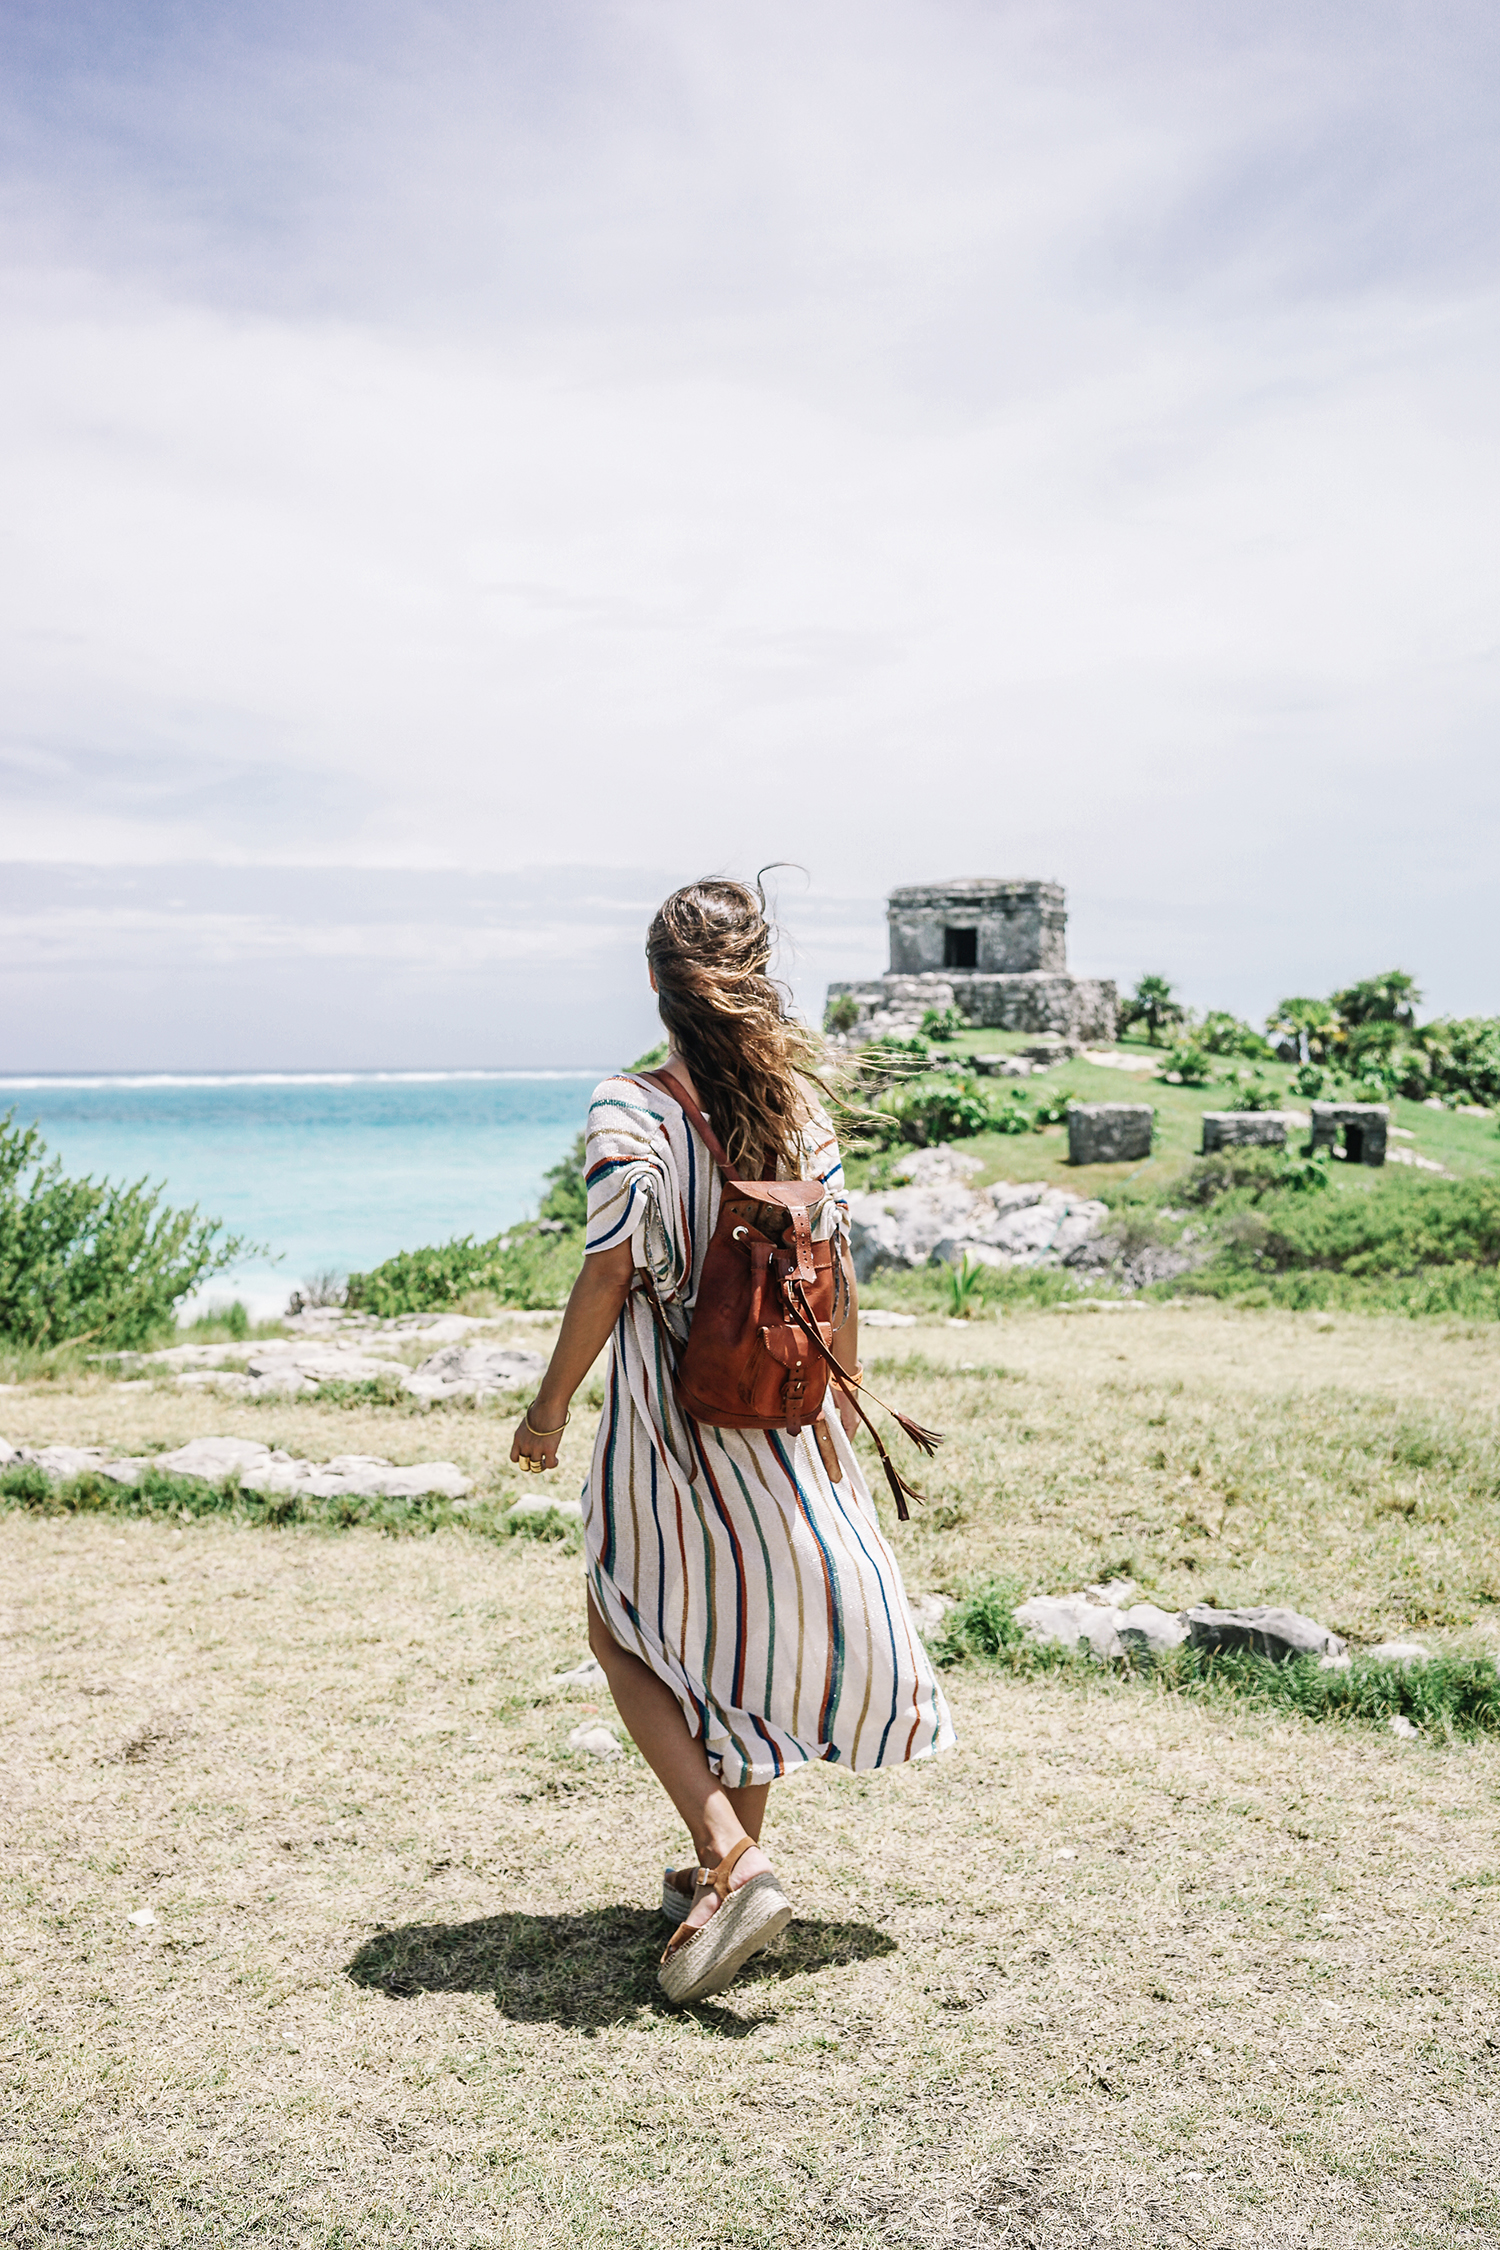 stripped_dress-leather_backpack-suede_espadrilles-mayan_ruins-hotel_esencia-sanara_tulum-beach-mexico-outfit-collage_vintage-32